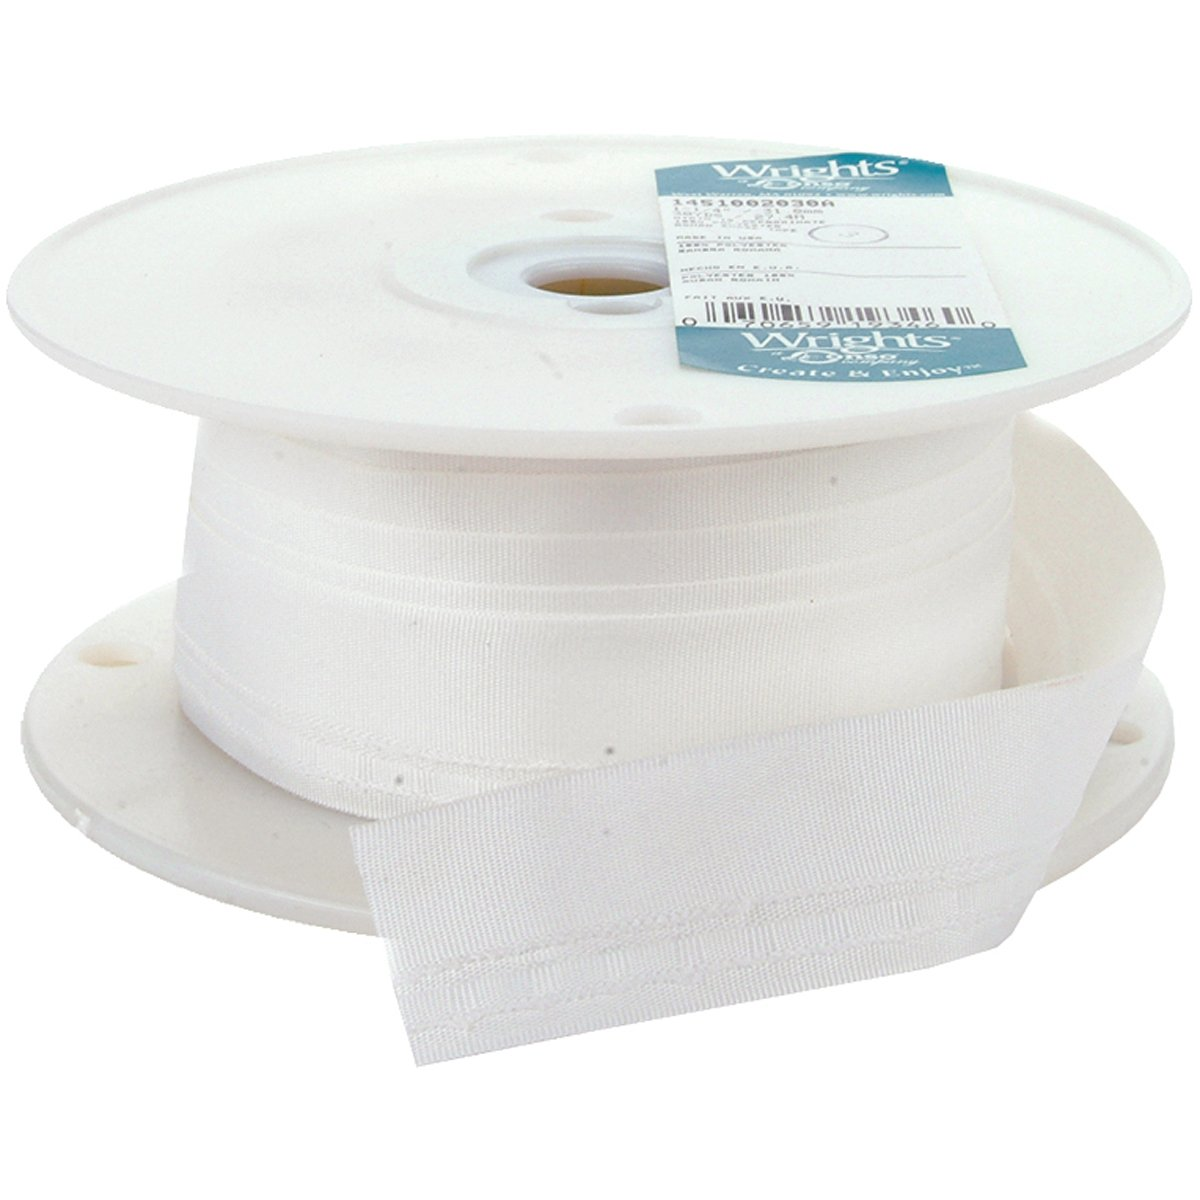 Wrights 2030A Roman Shade Tube Tape, 30-Yard, Notions - In Network